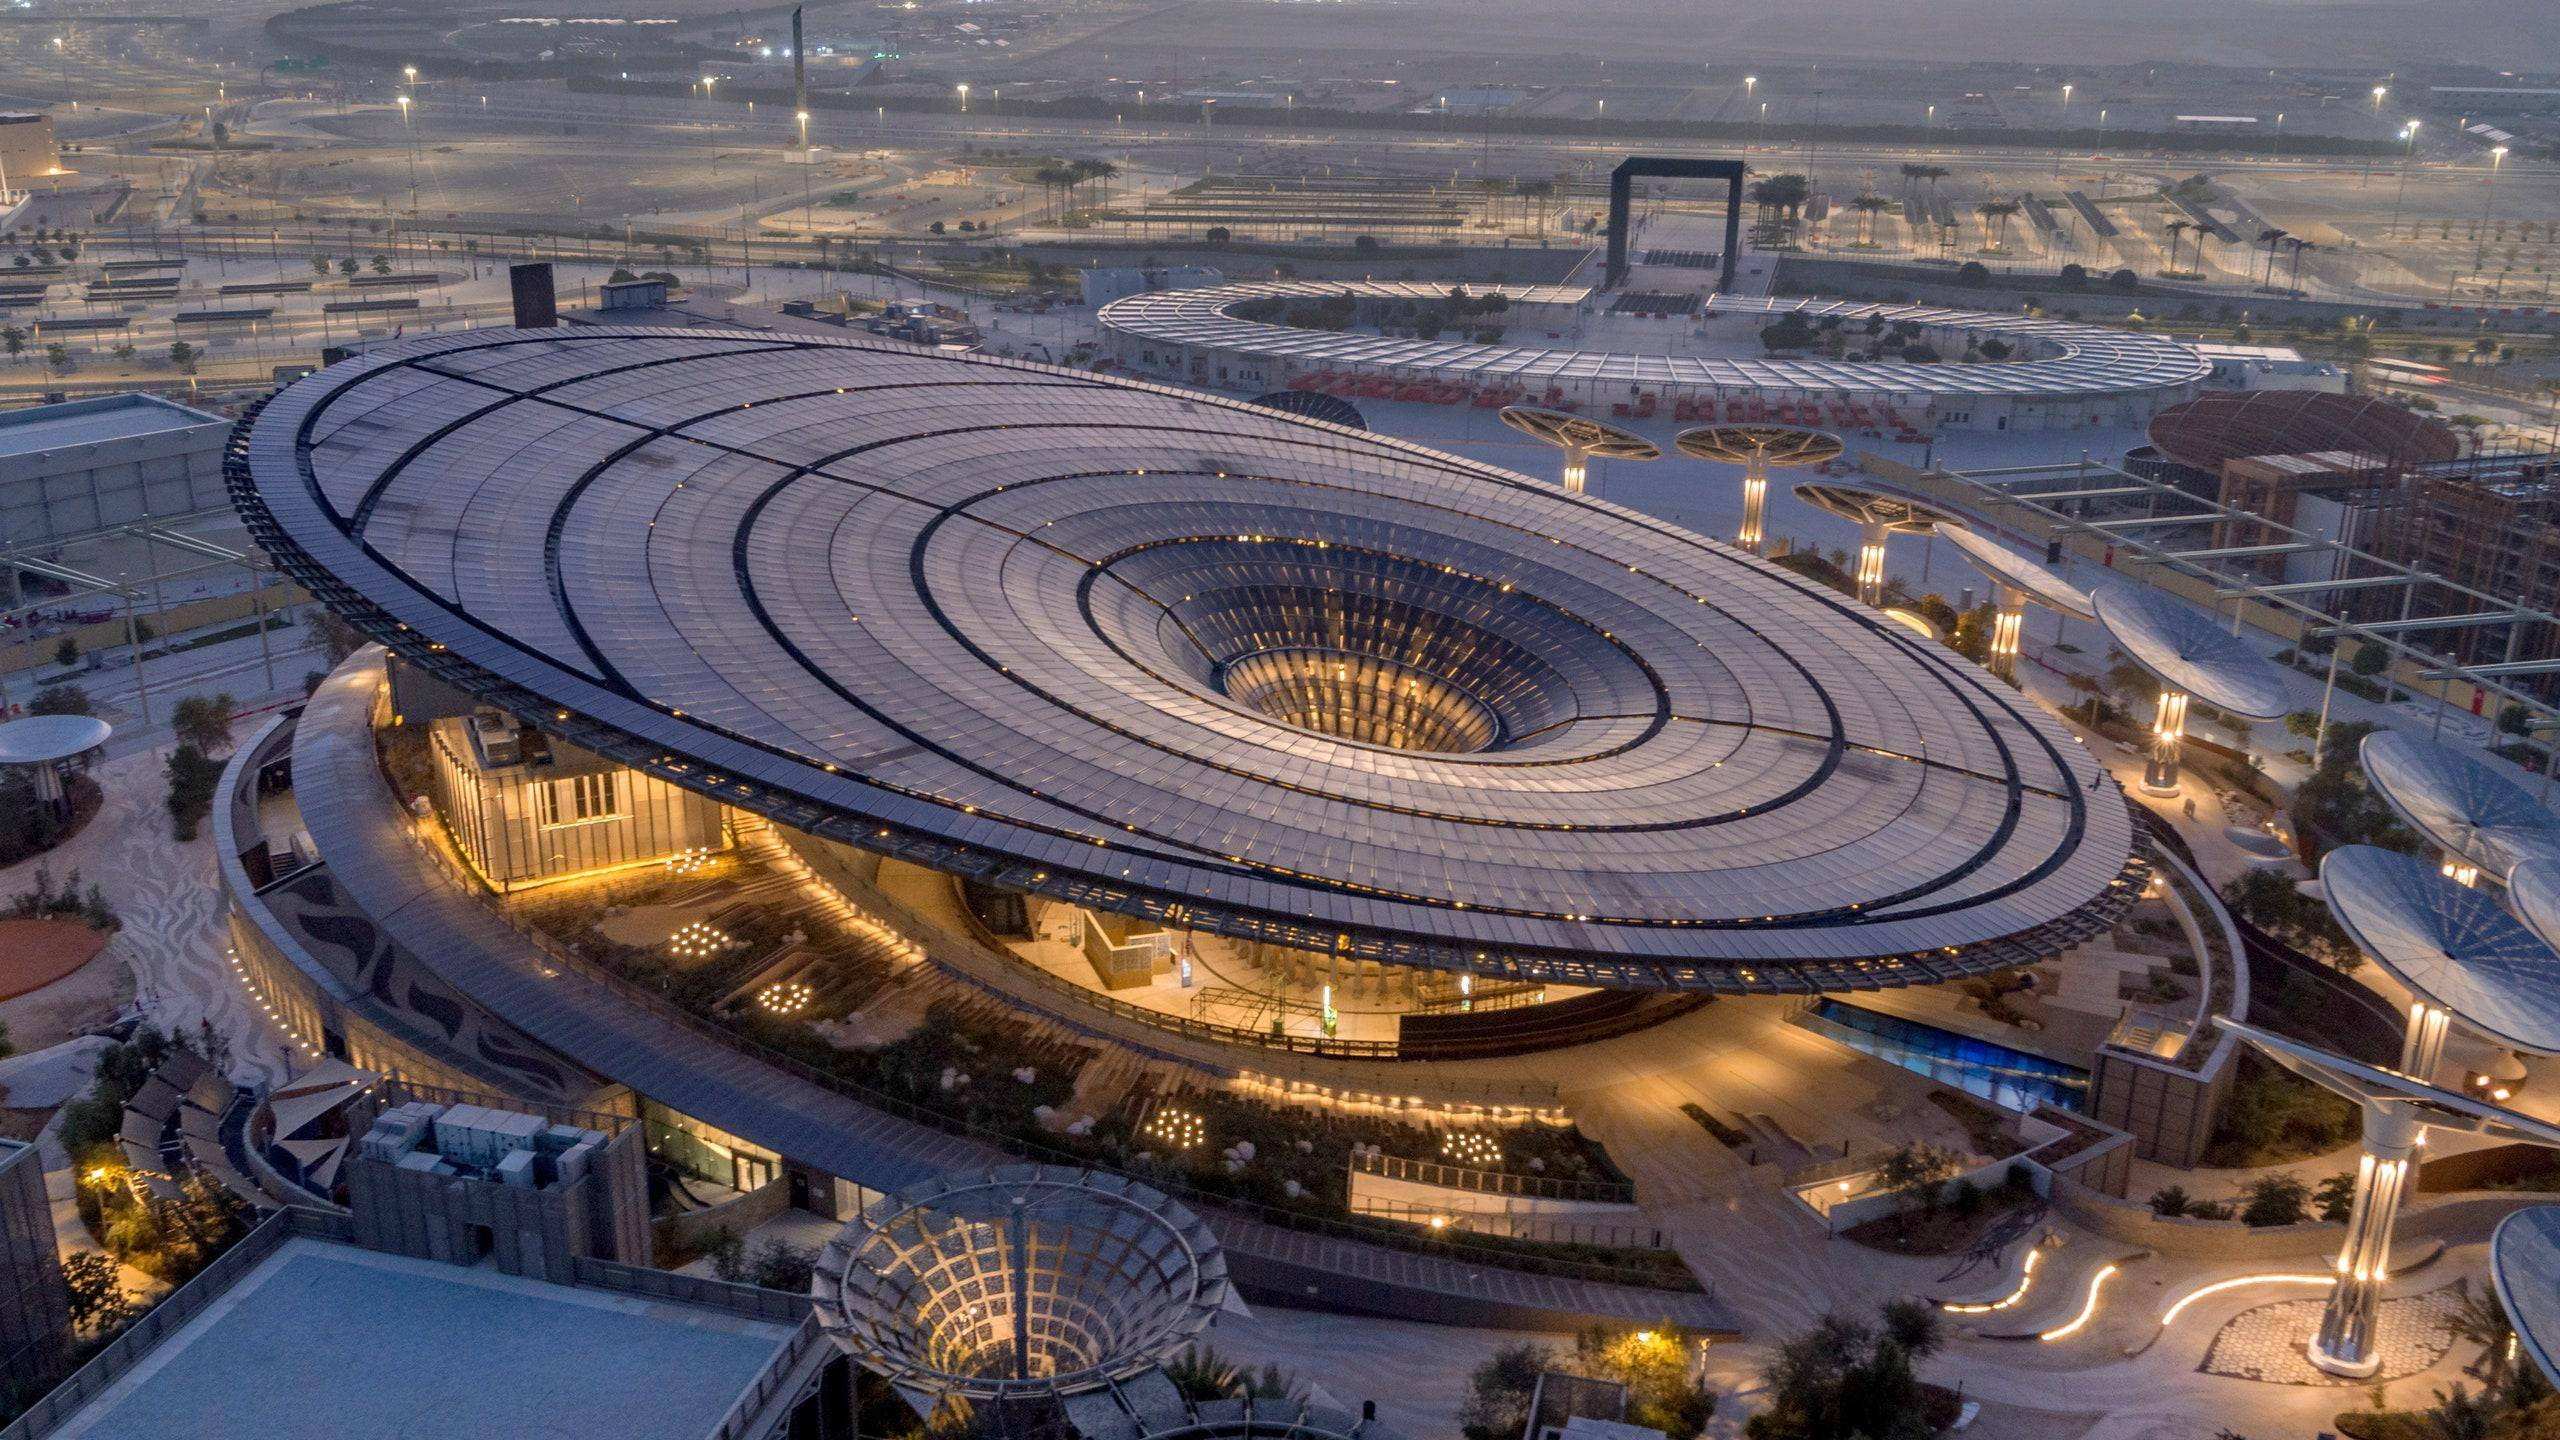 Expo 2020 Dubai: Emirates offers free day pass to travellers